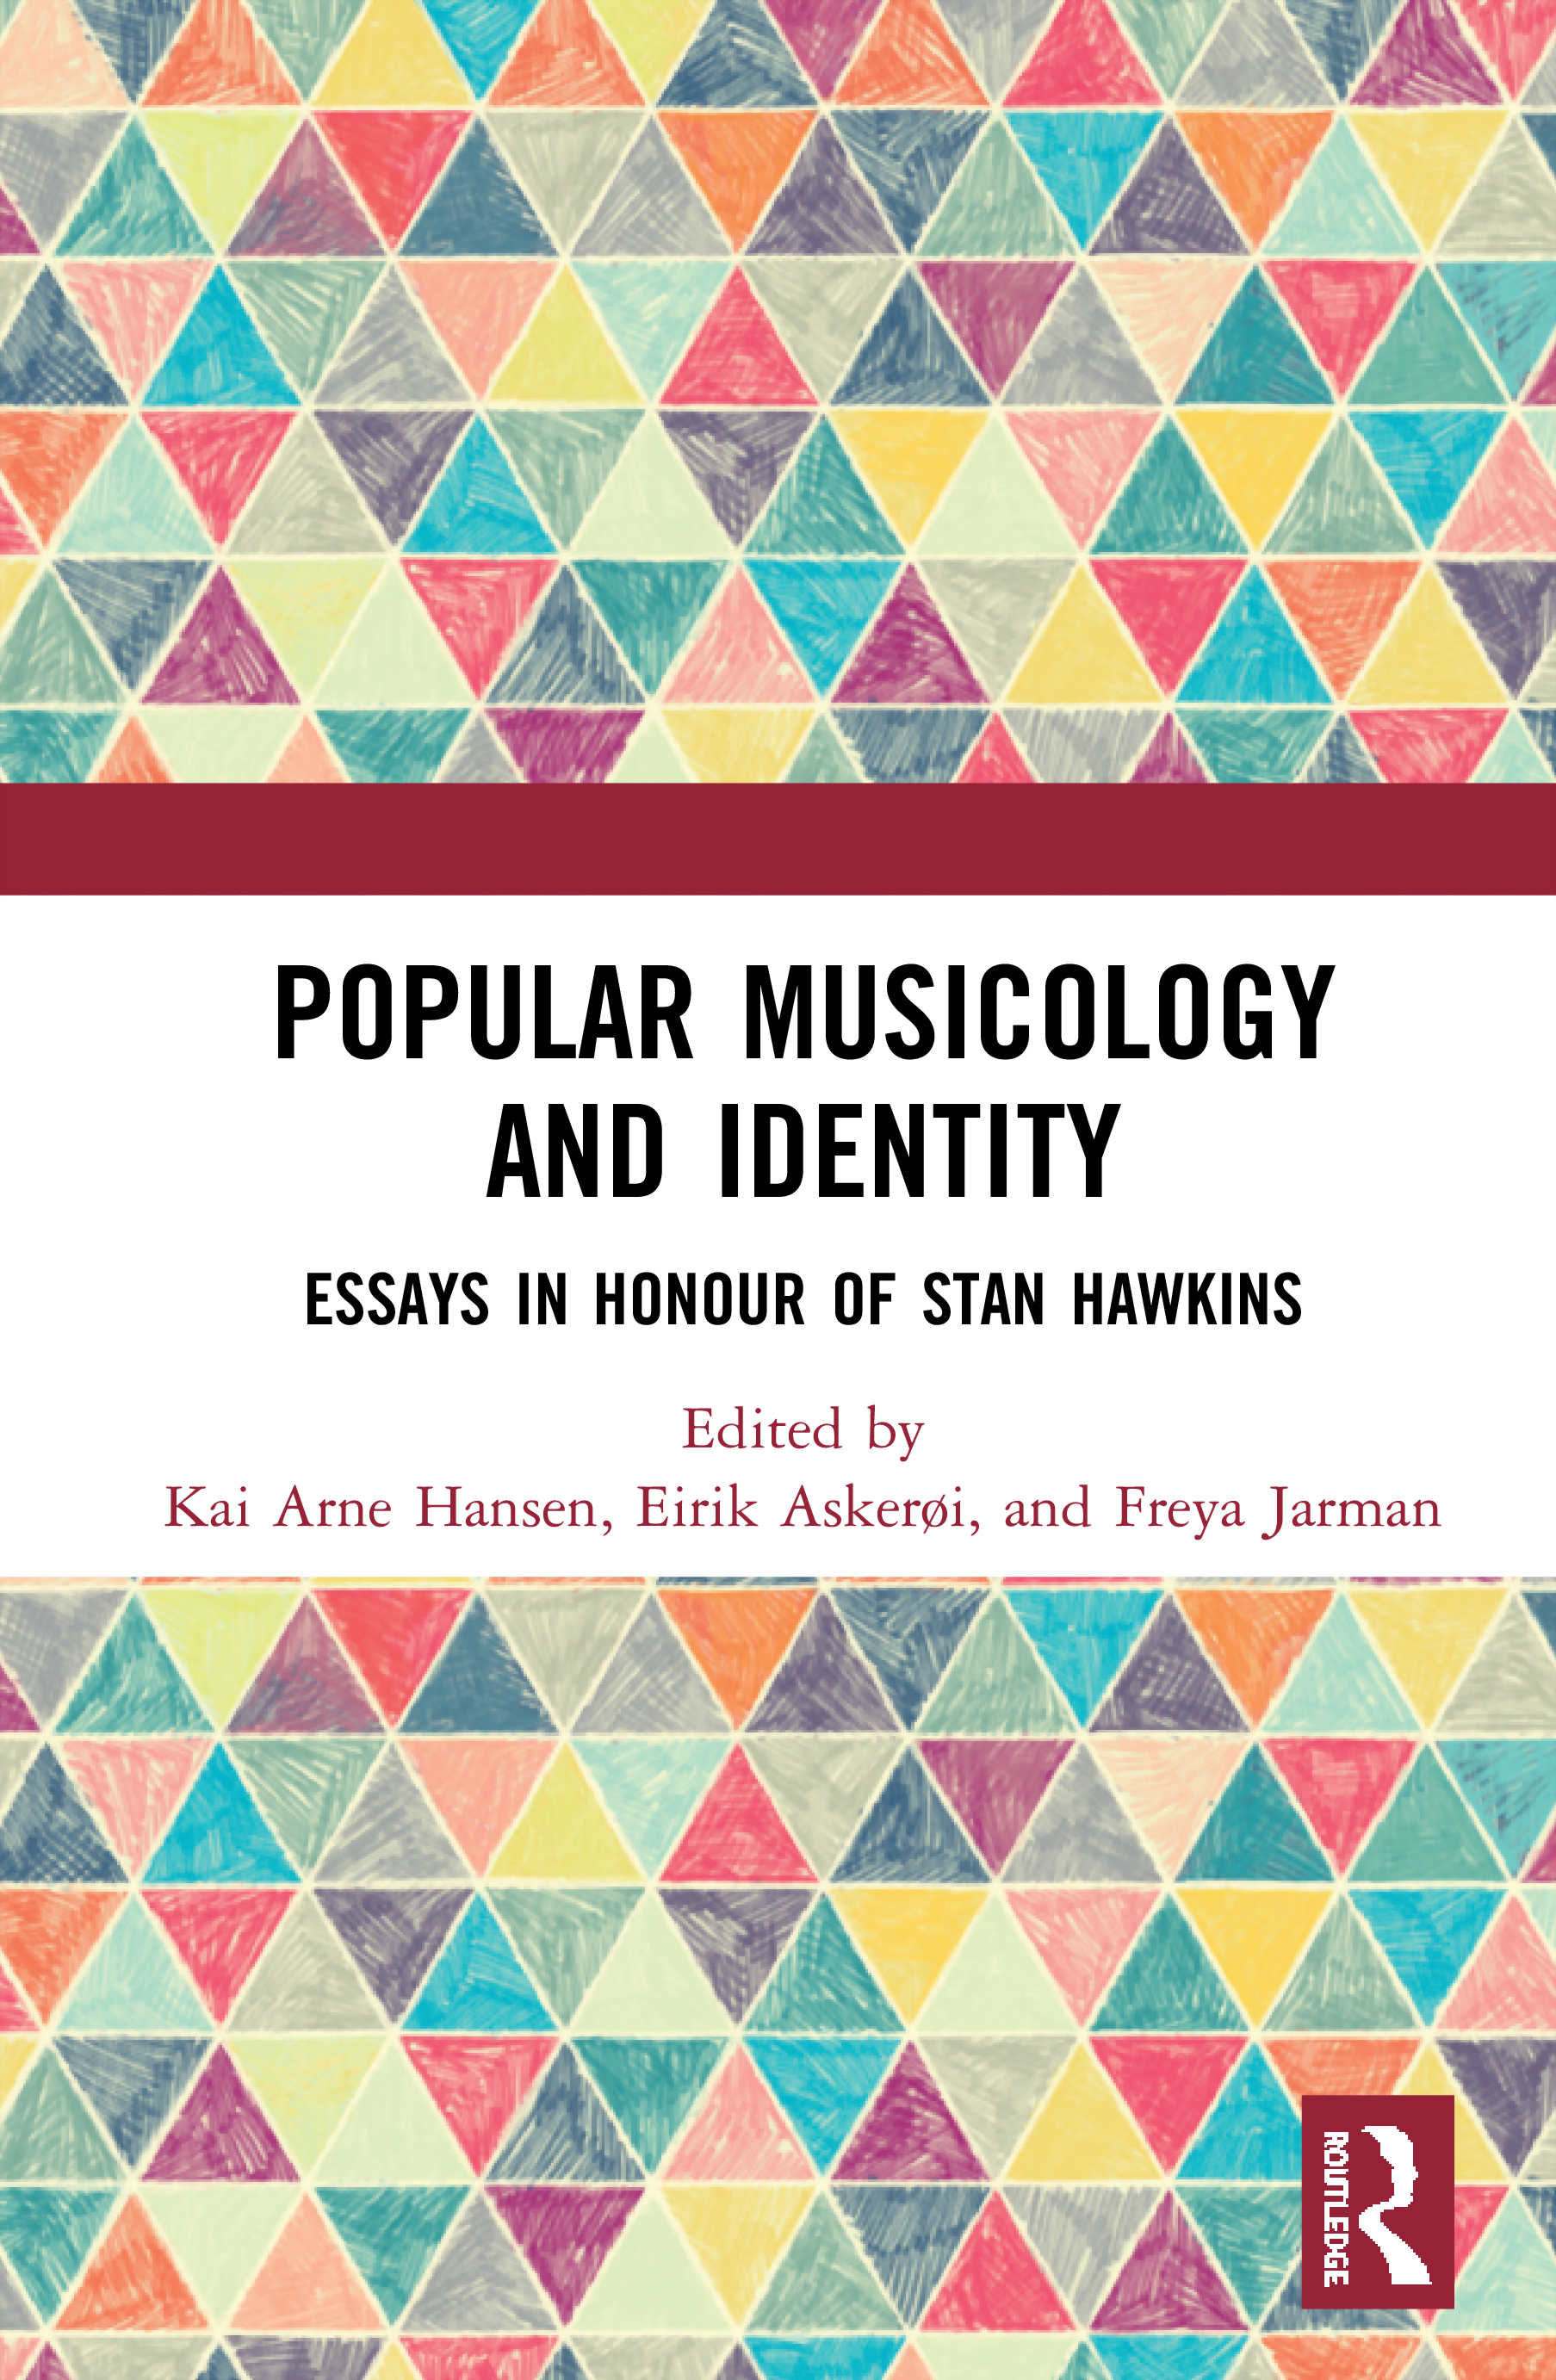 Popular Musicology and Identity book cover